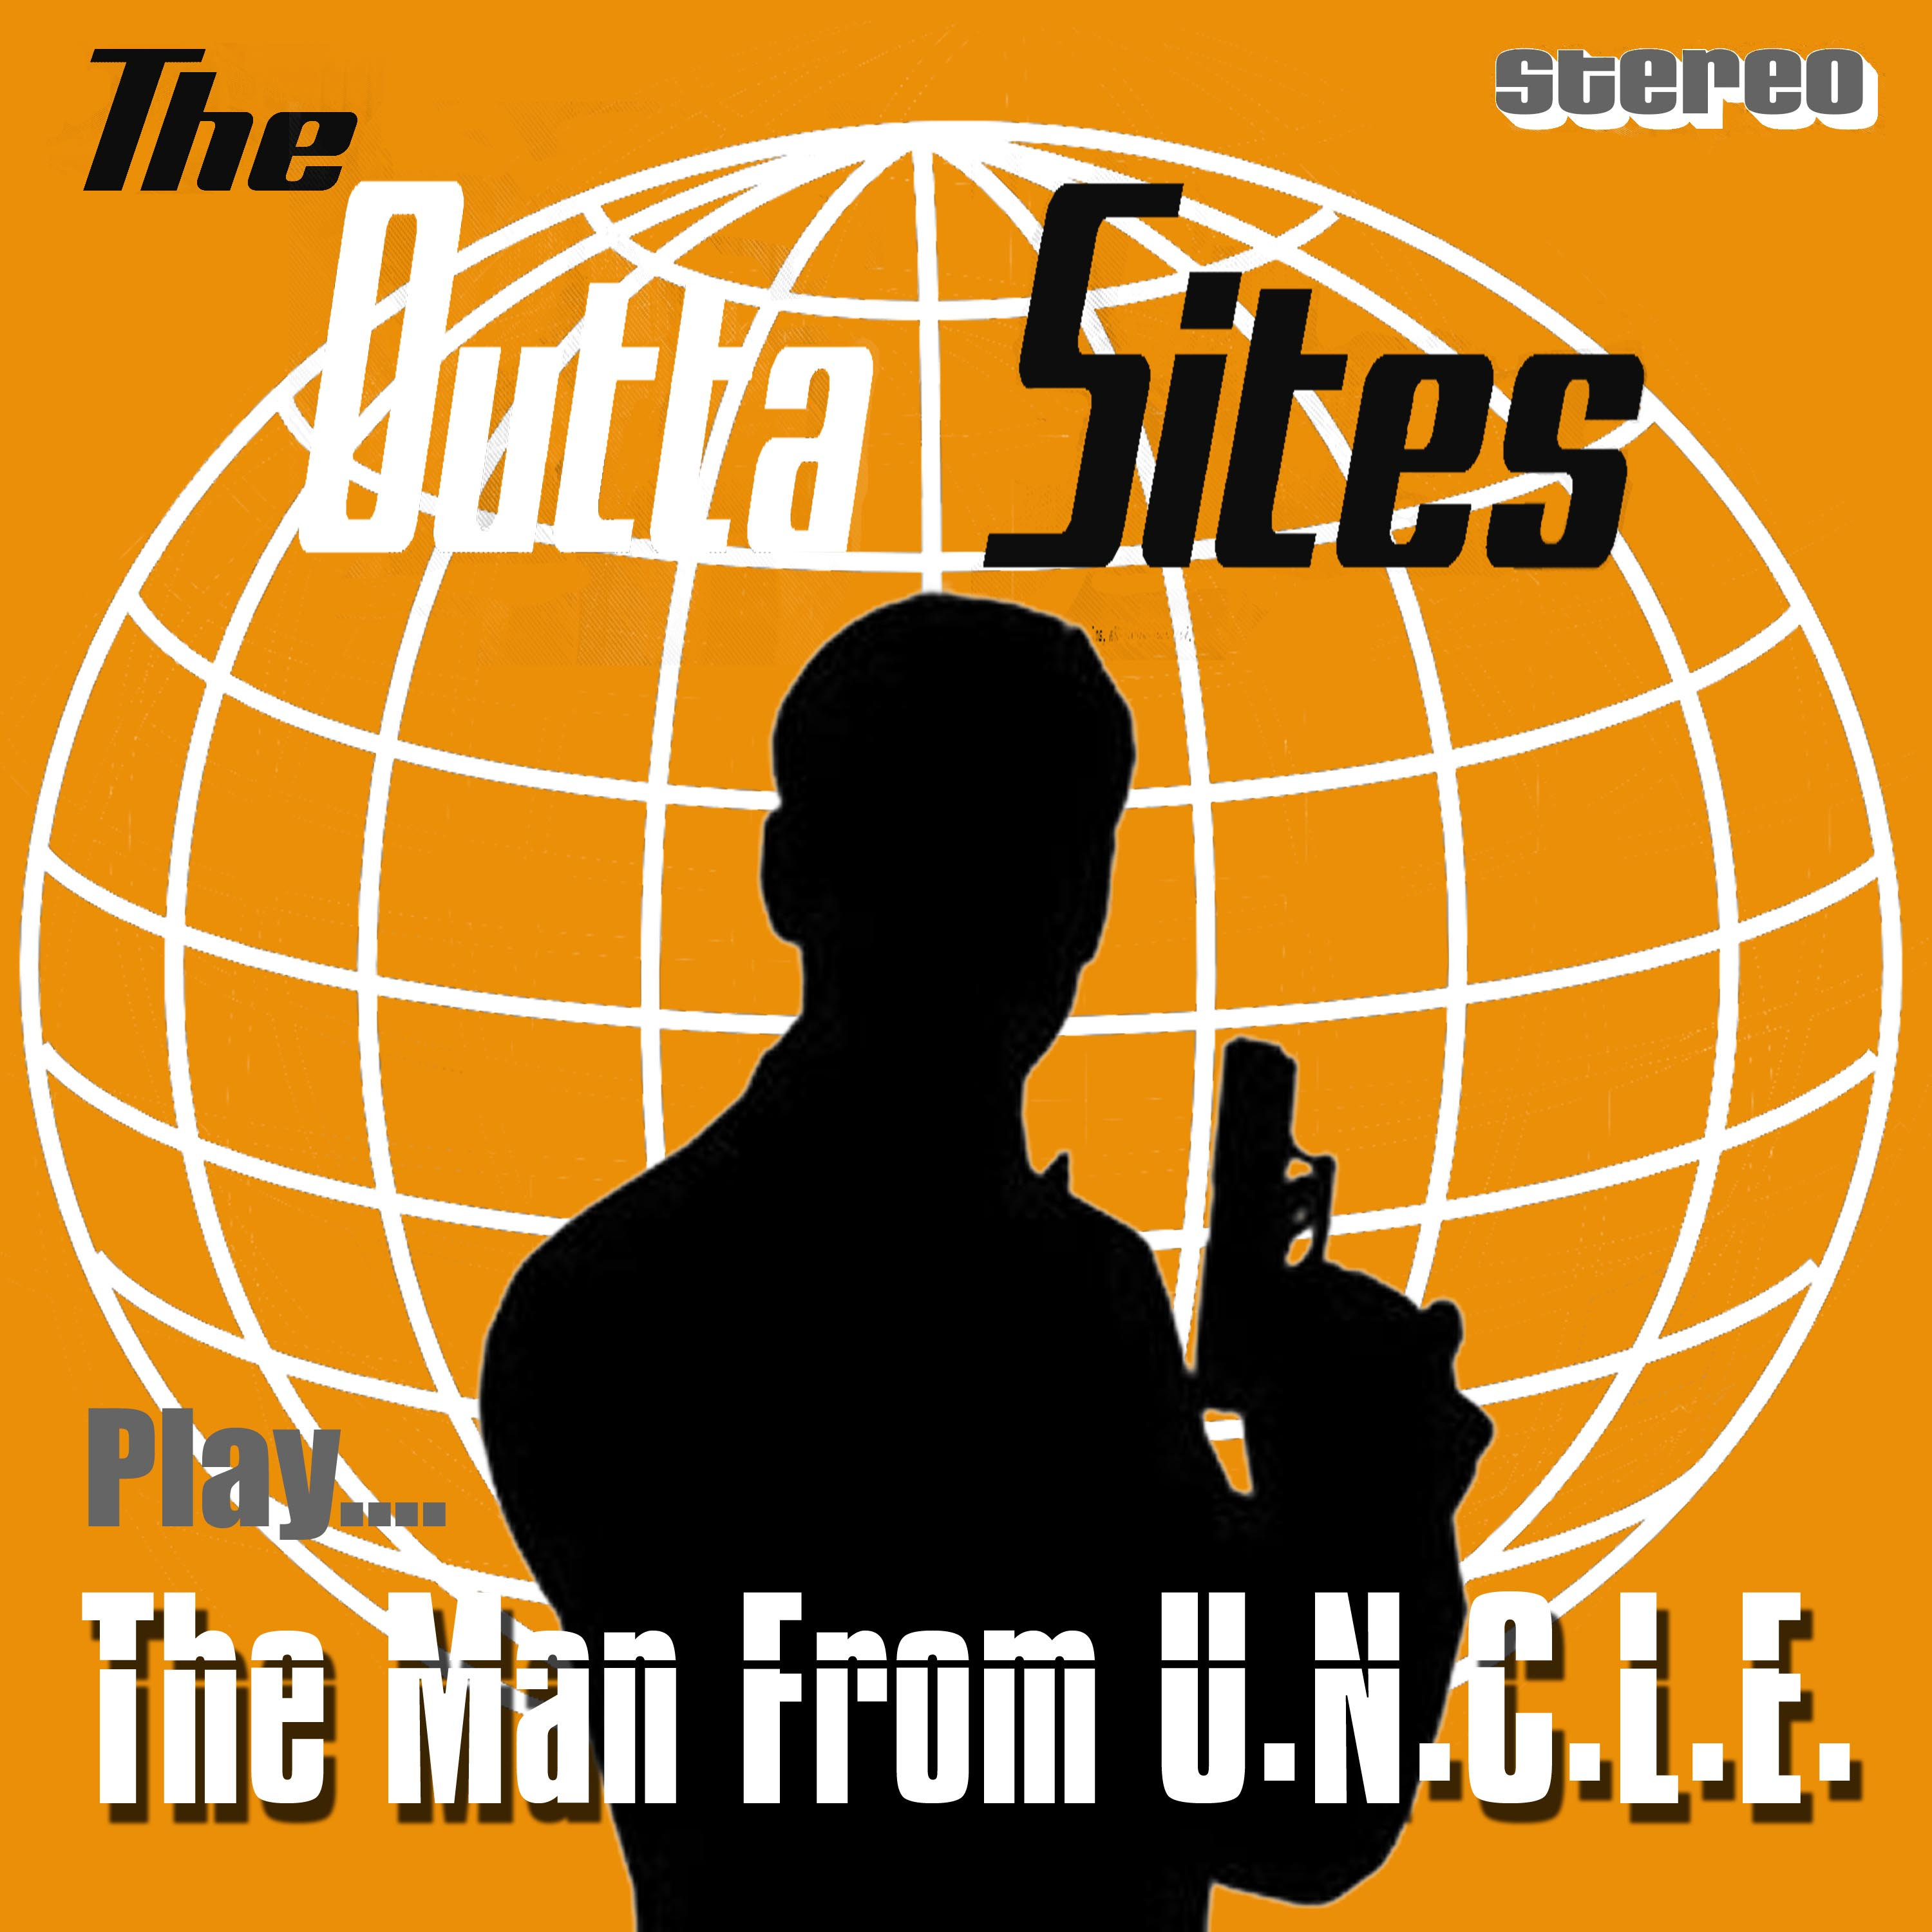 The Outta Sites The Man From U.N.C.L.E.